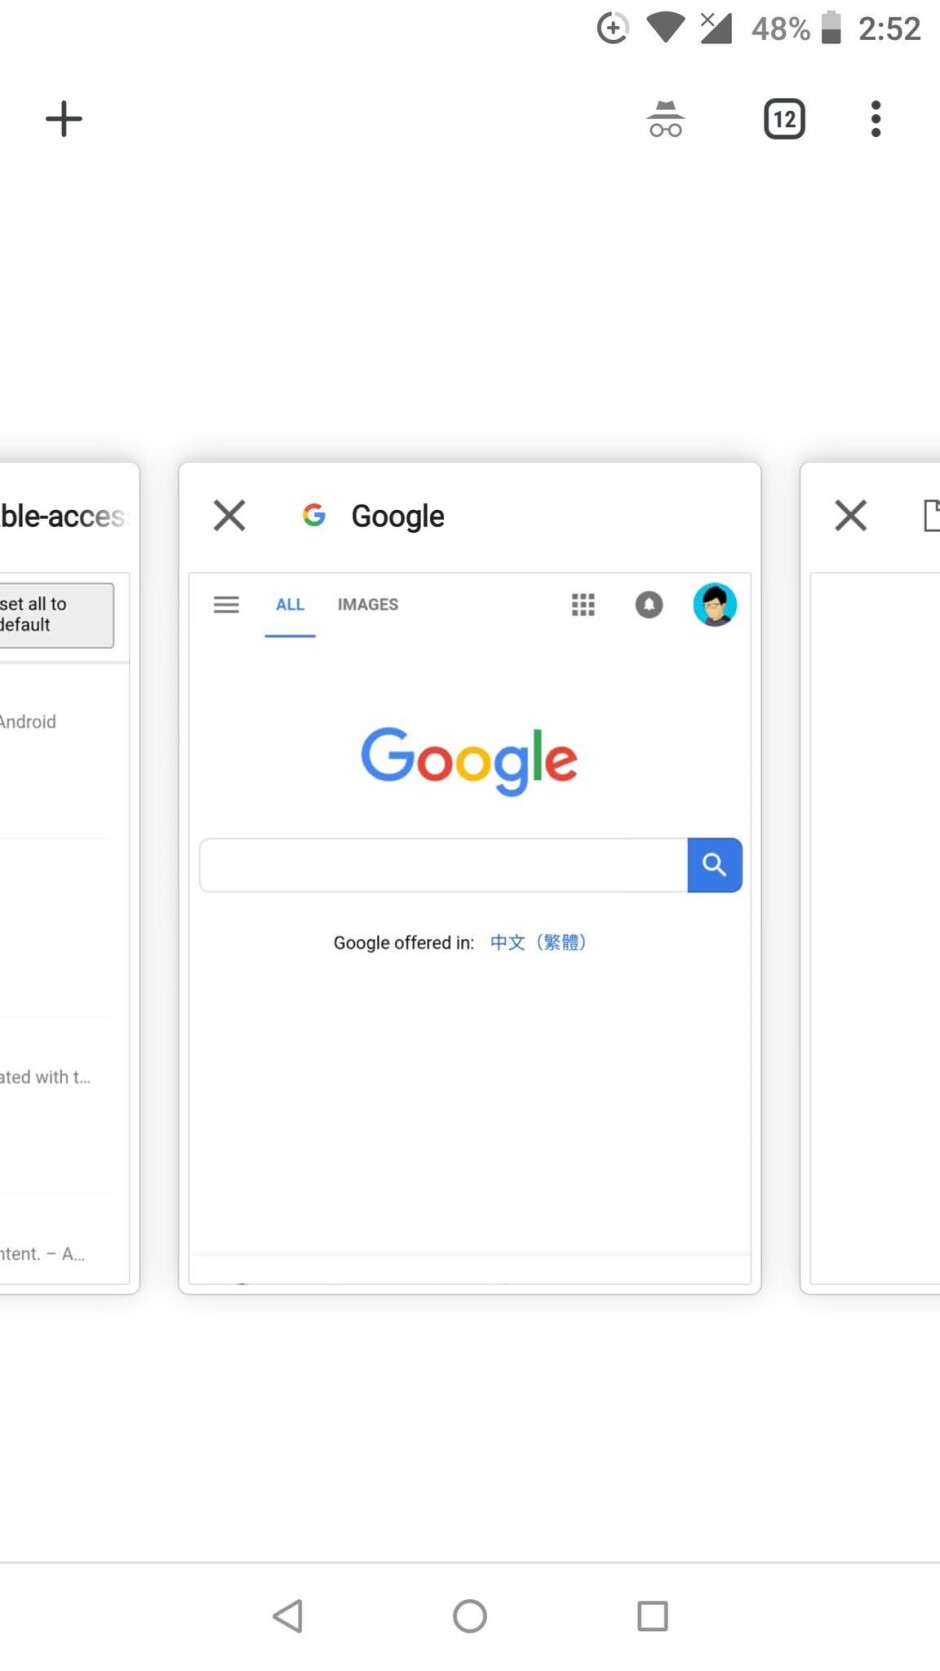 Chrome Canary's horizontal app switcher - Chrome Canary scores an experimental horizontal tab switcher that reminds of Android P